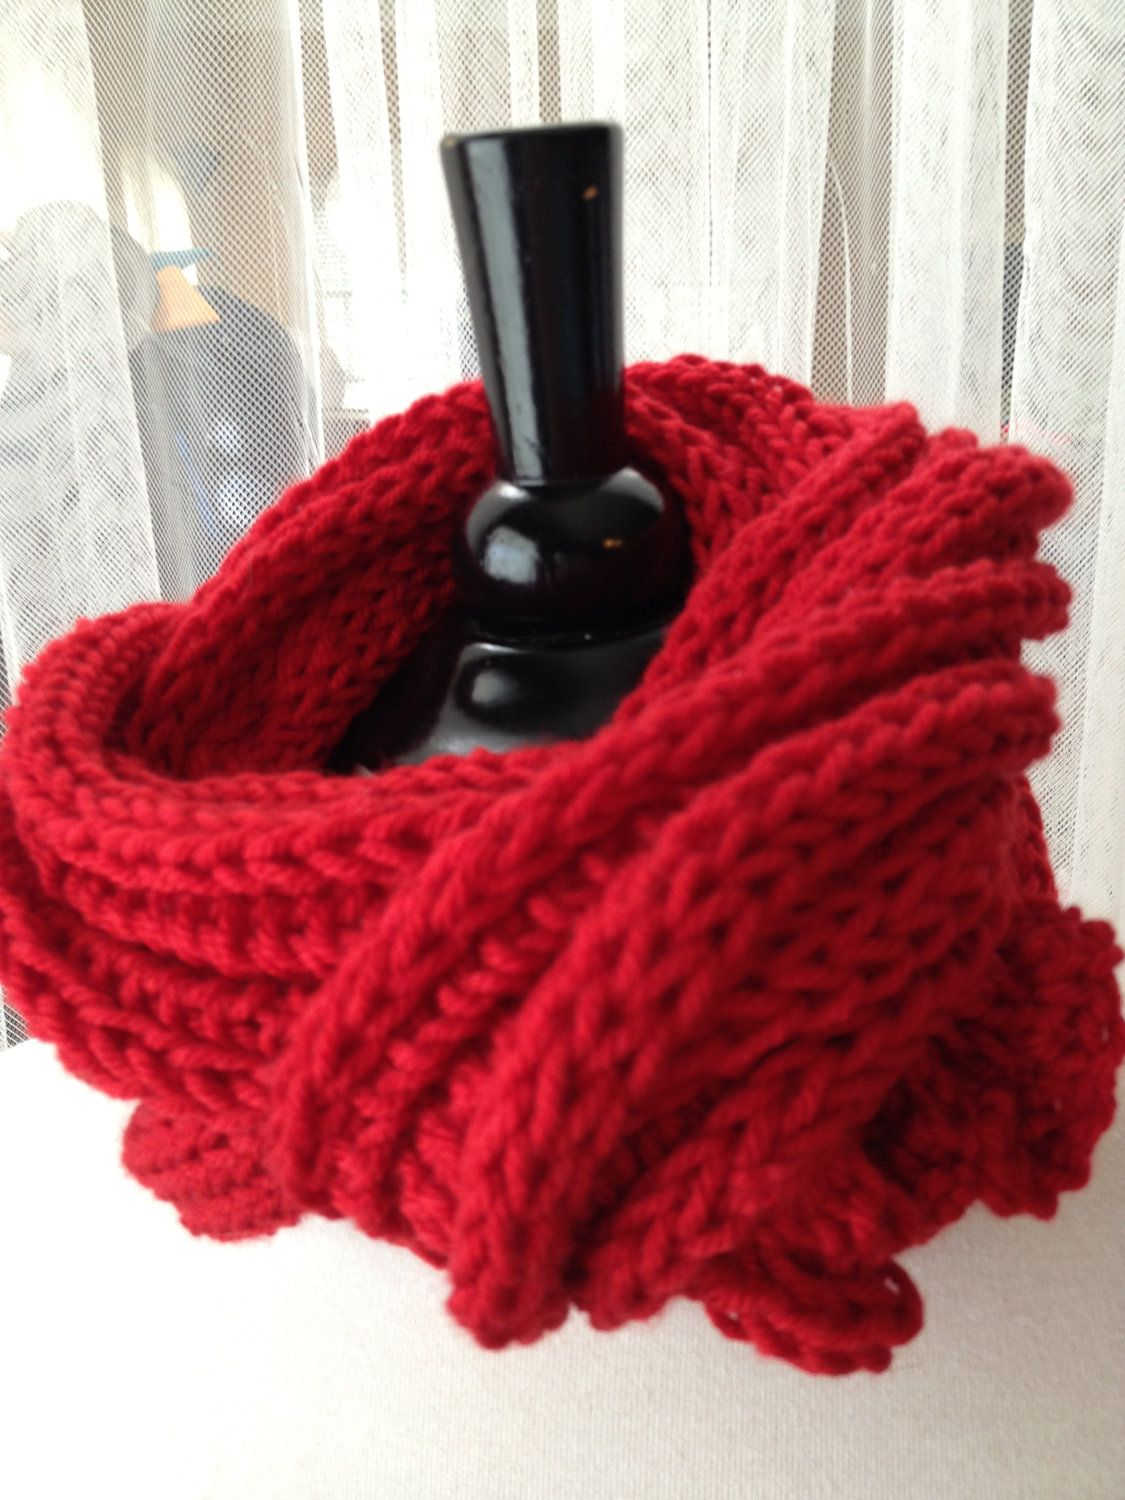 Amy Pond Inspired XL Dr. Who Red Scarf   Geek   Pinterest